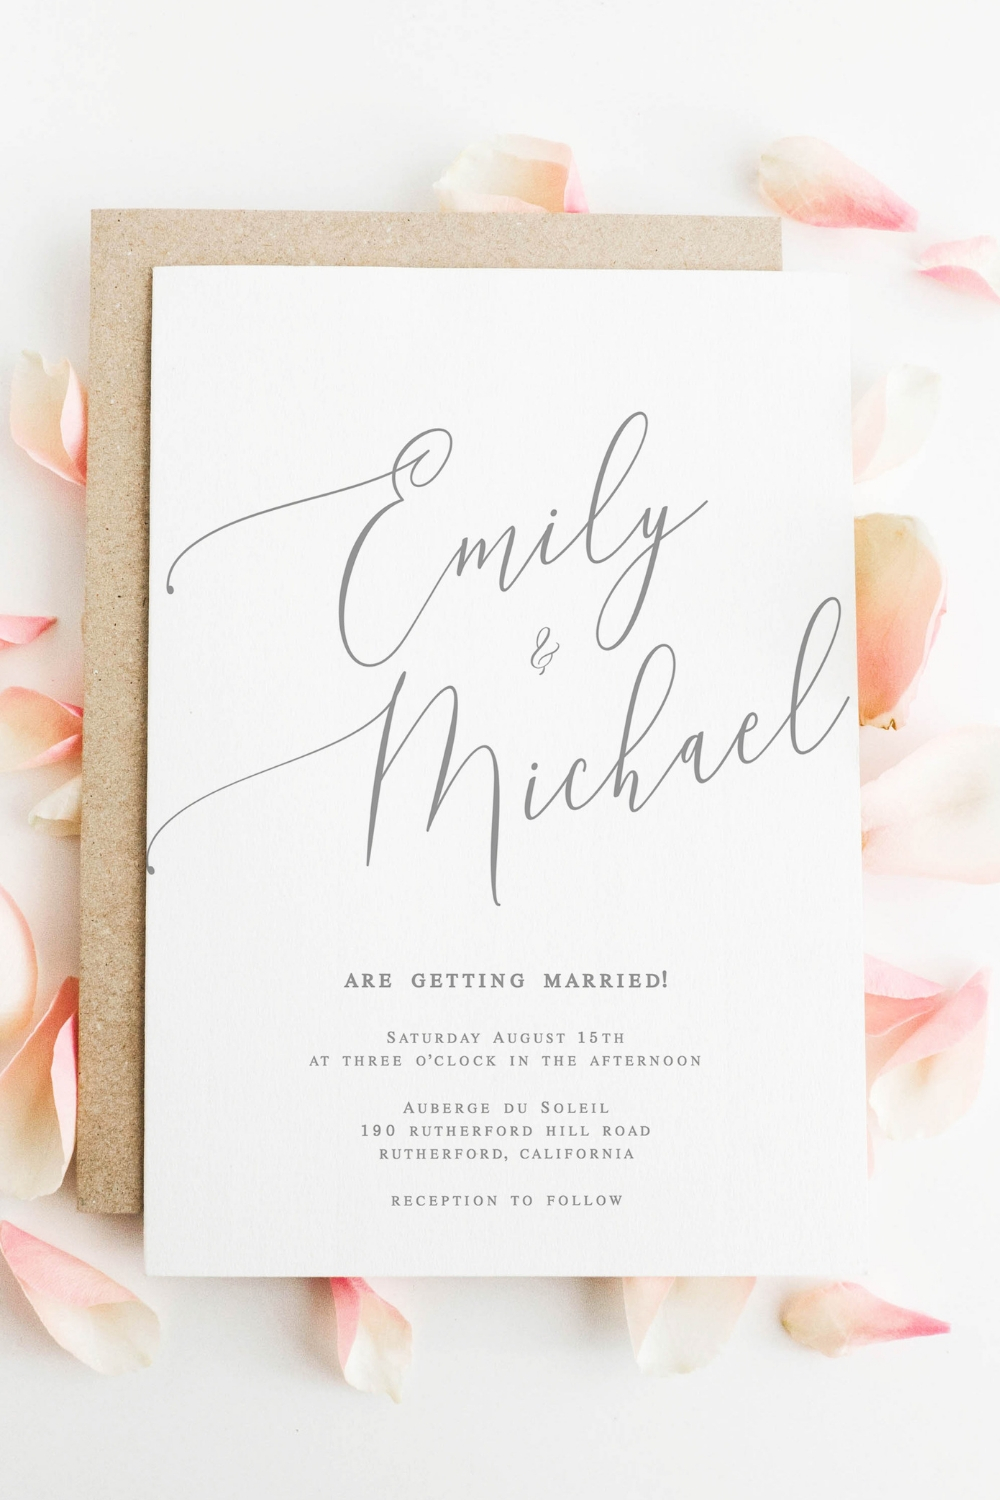 How To Save On Wedding Invitations Seven 7 Ideas Create Gorgeous Invites Buddget: Wedding Invitations On A Budget At Reisefeber.org